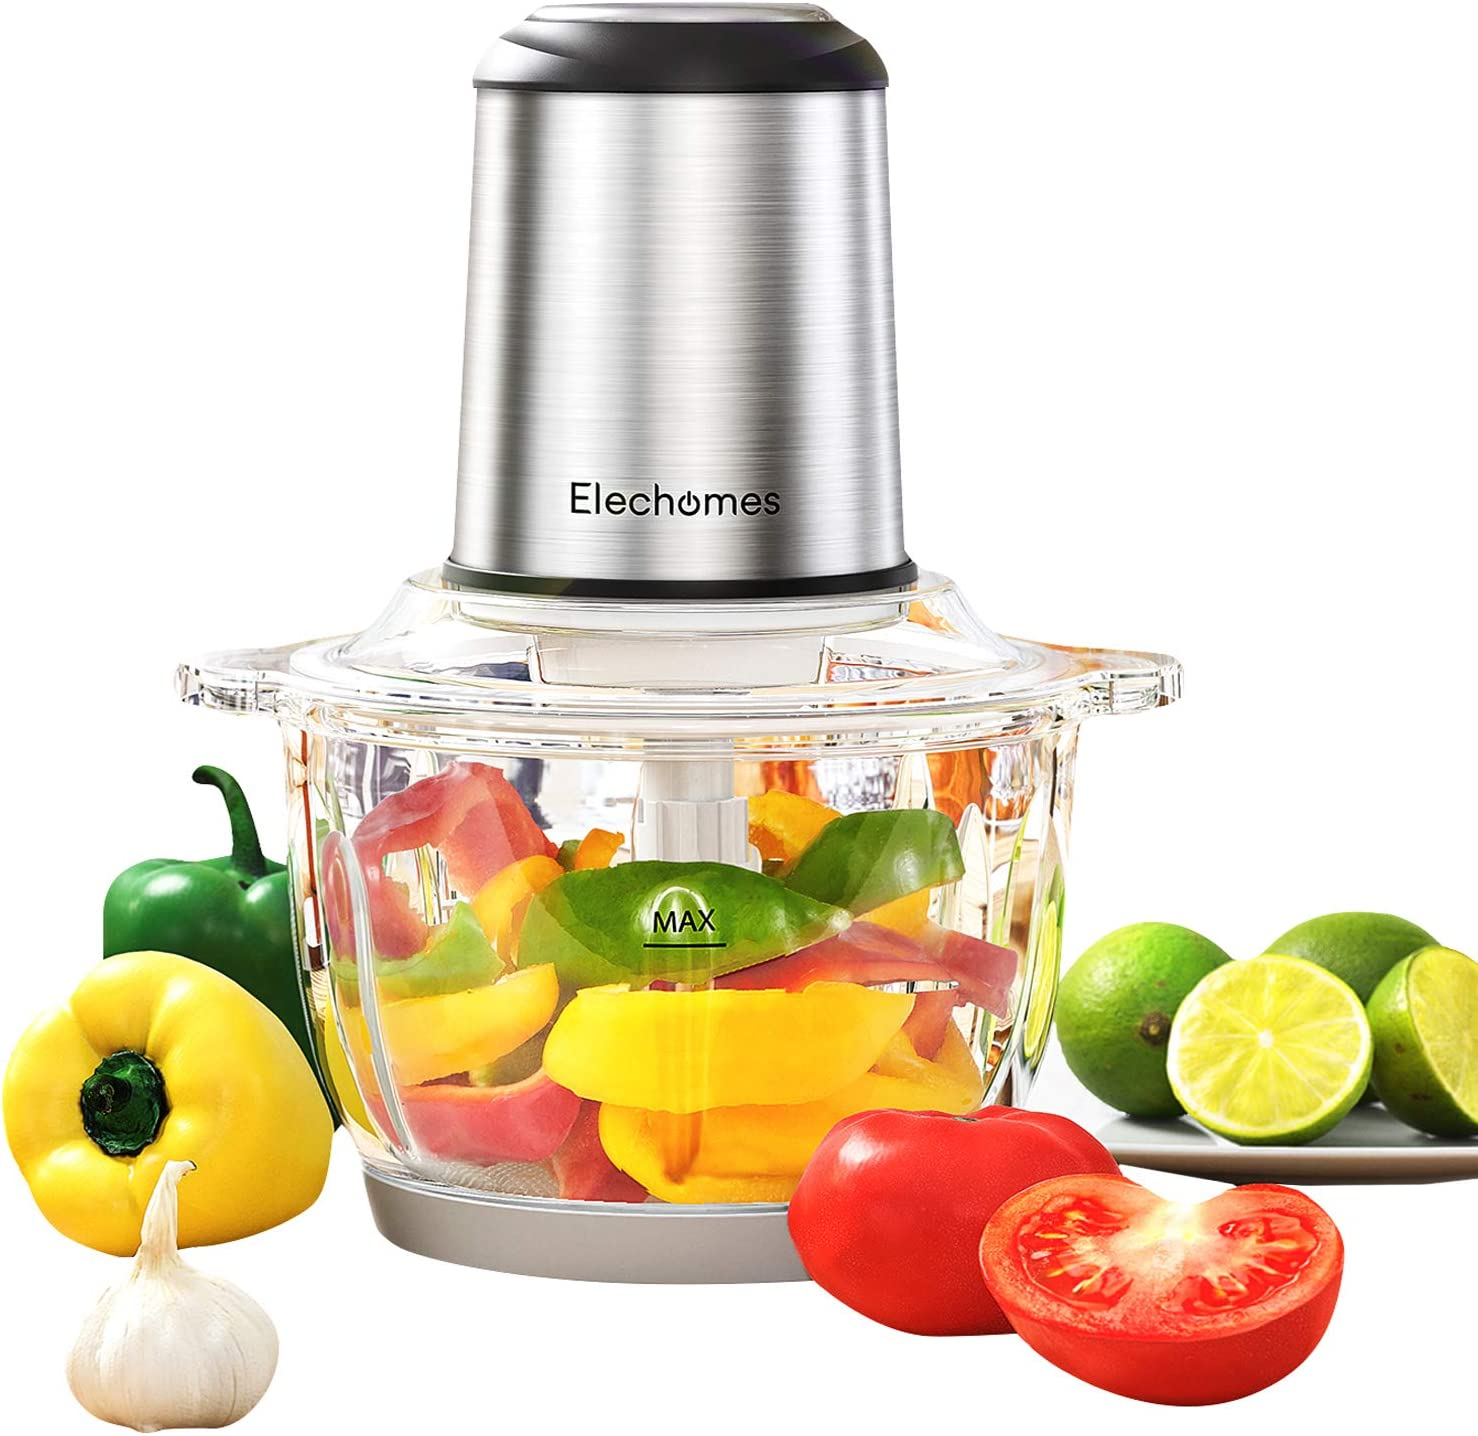 Electric Food Chopper & Meat Processor, Elechomes High Capacity 8-Cup BPA-Free Glass Bowl Blender Grinders for Onion Nuts, Clear Food Processing, 4 Detachable Dual Layer S-Blades with Protector, Stainless Steel Body, Free Bottom Anti-Slip Mat